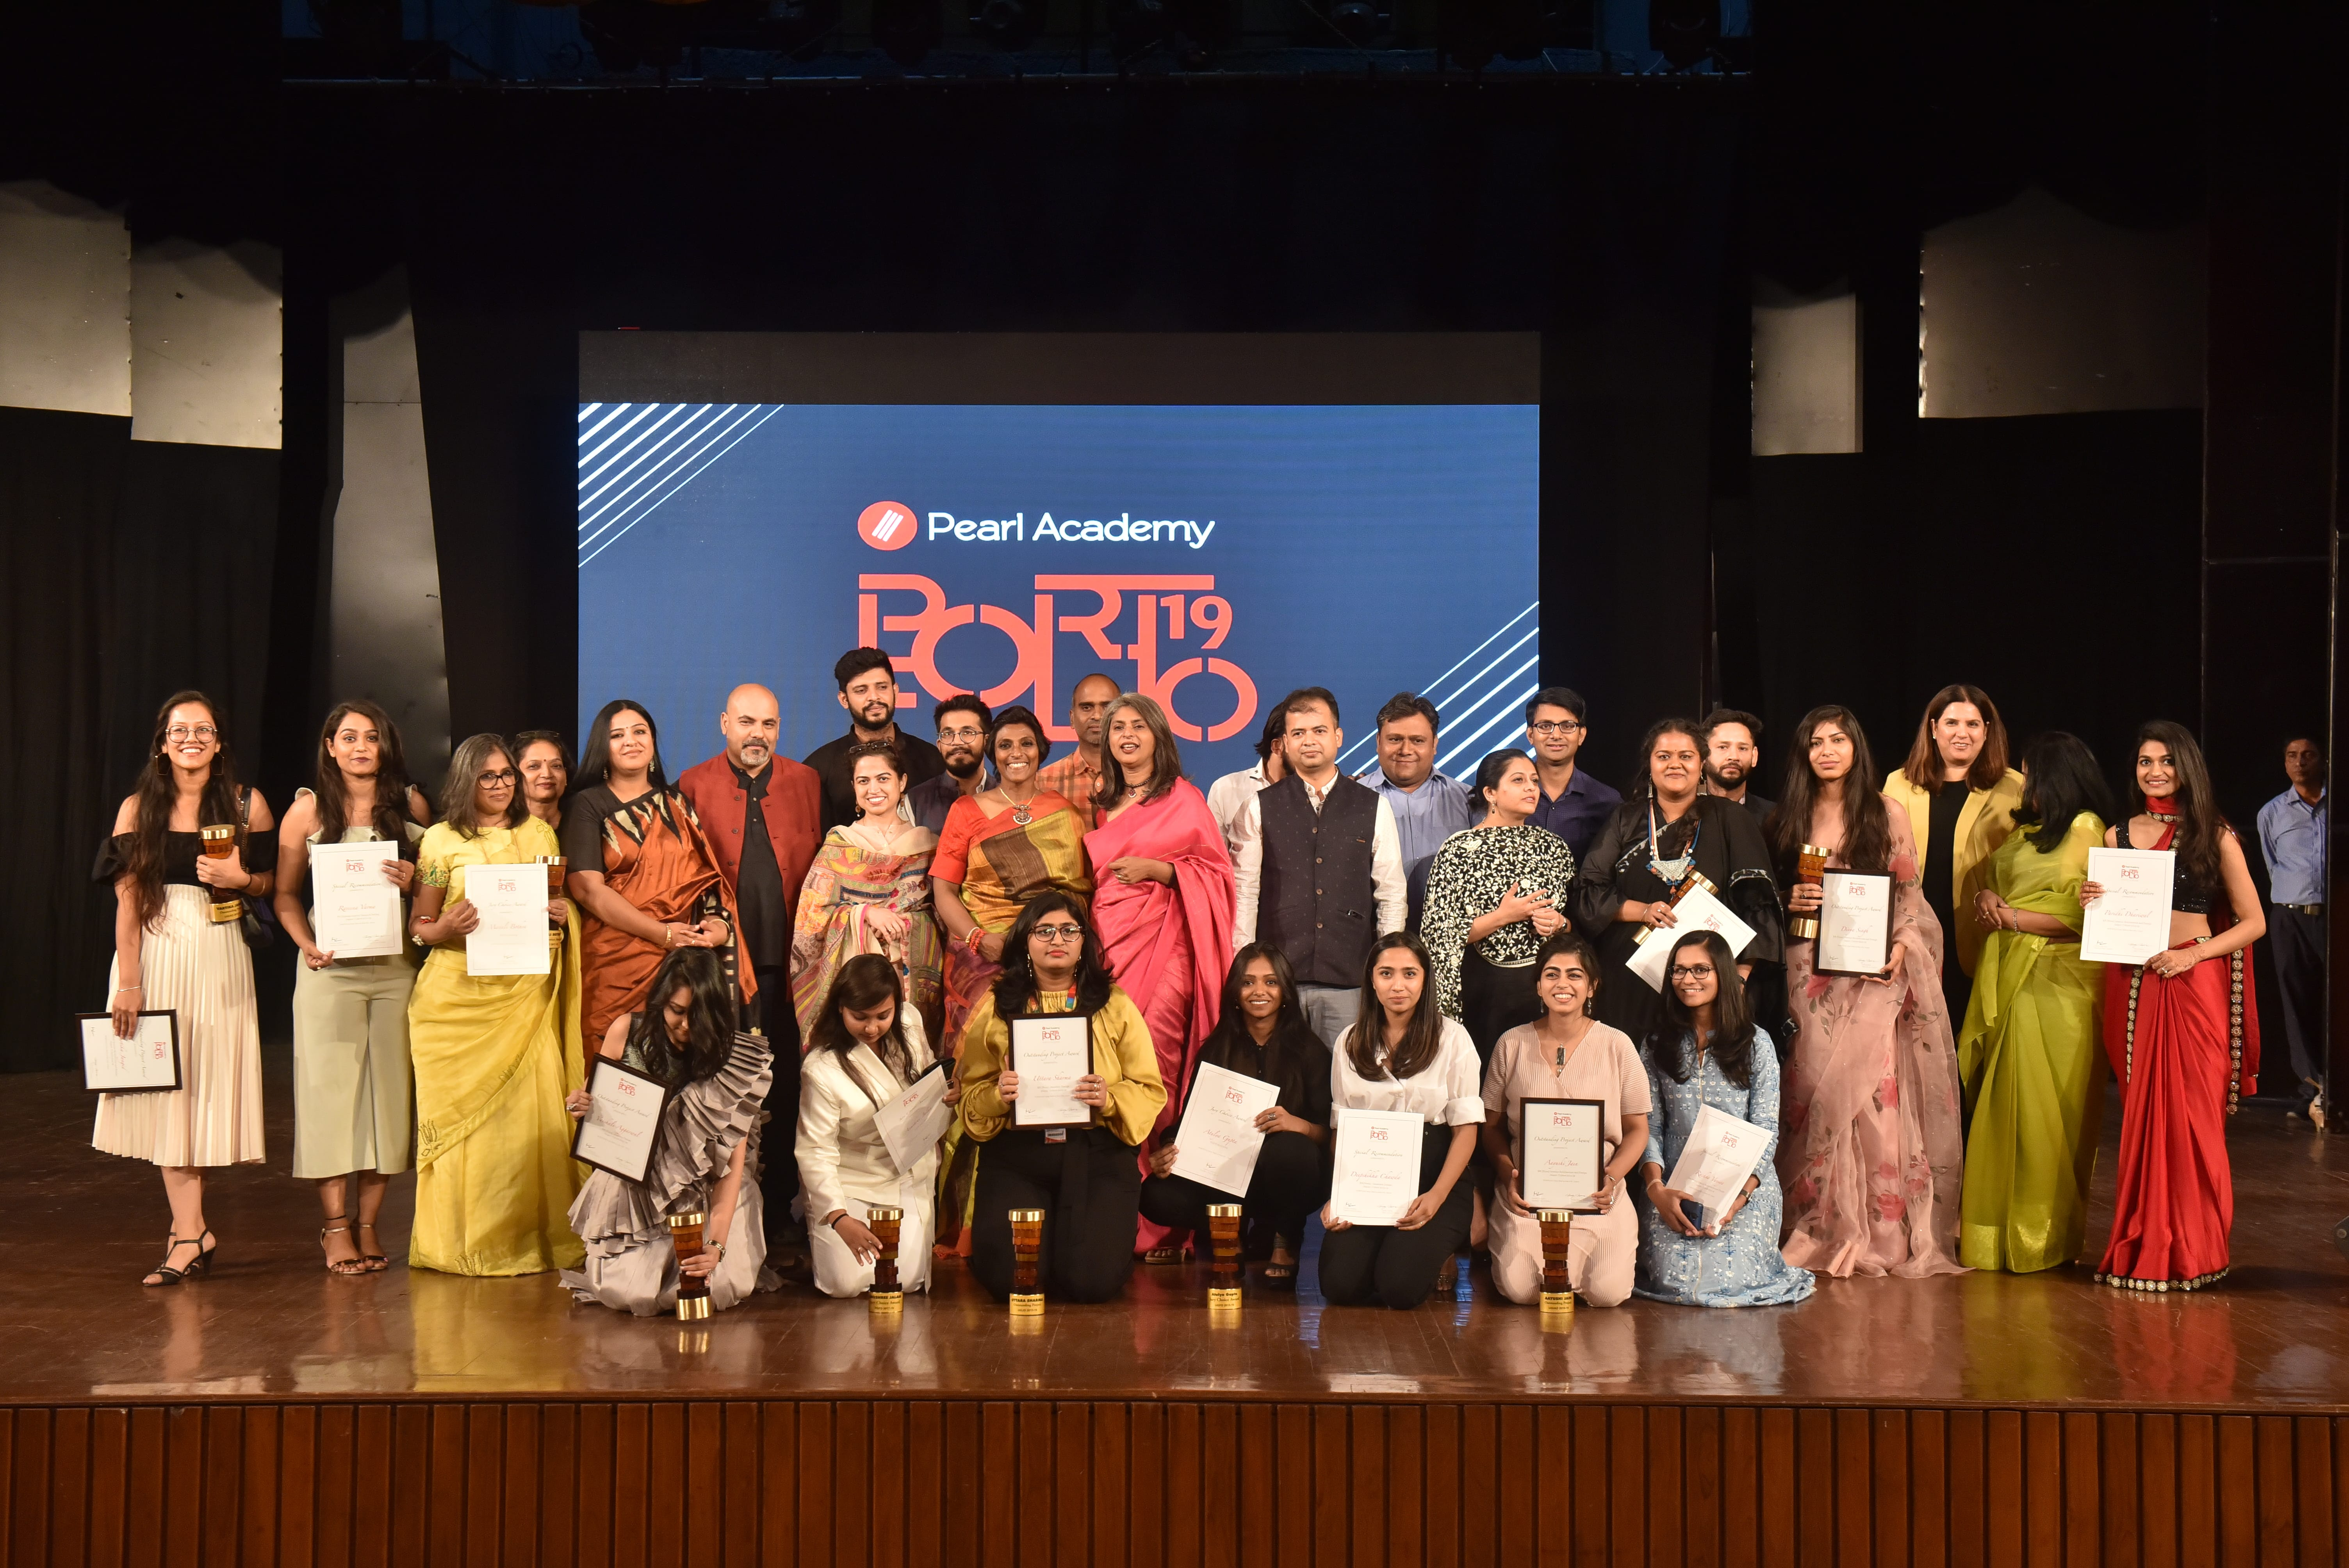 Pearl Academy Jaipur Graduates Showcase Their Outstanding Work Defining the Future of Design and Architecture at Portfolio 2019